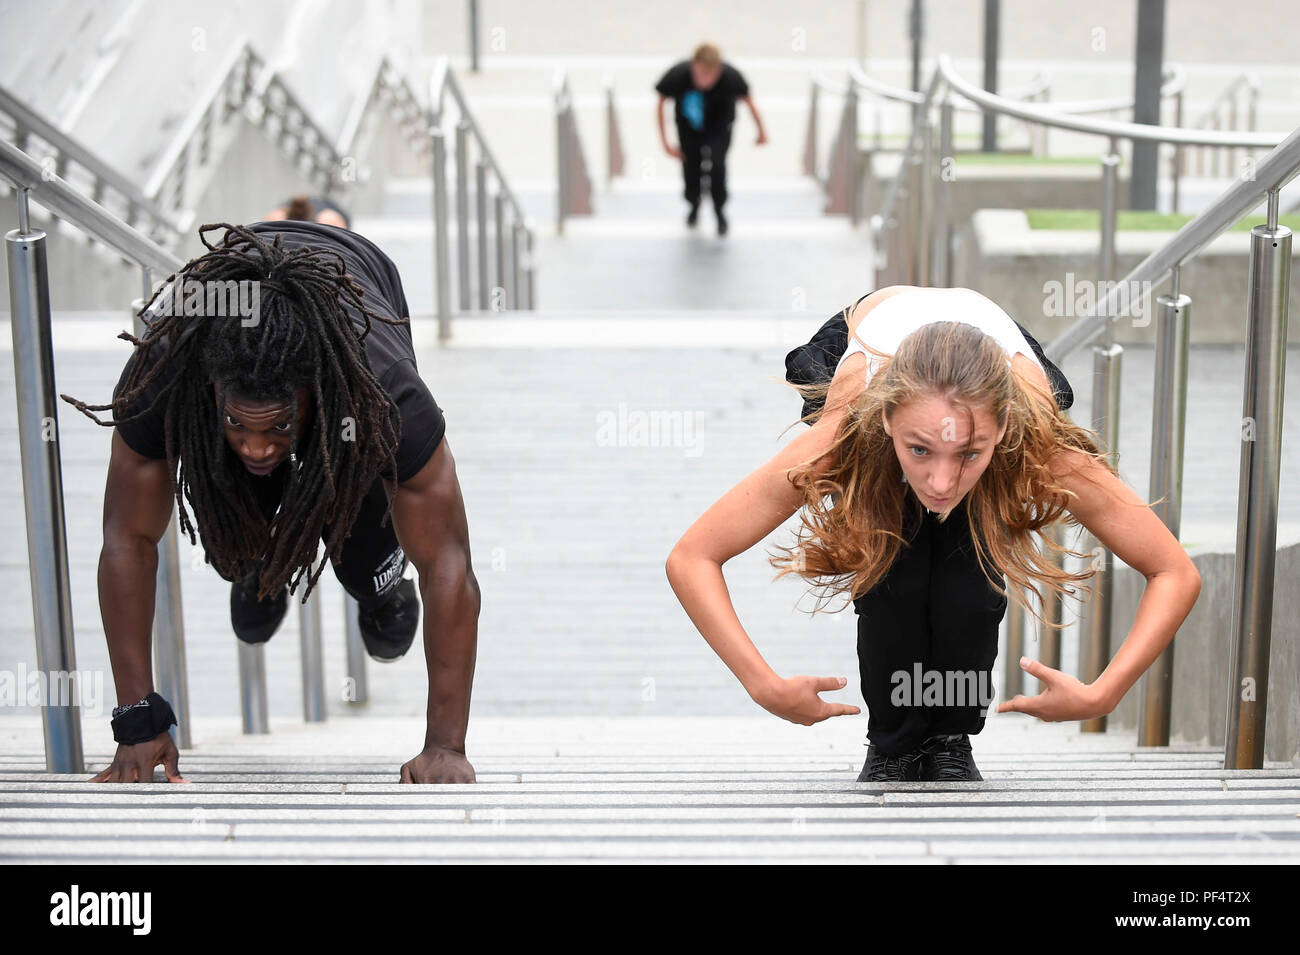 London, UK  19 August 2018  Parkour practitioners take part